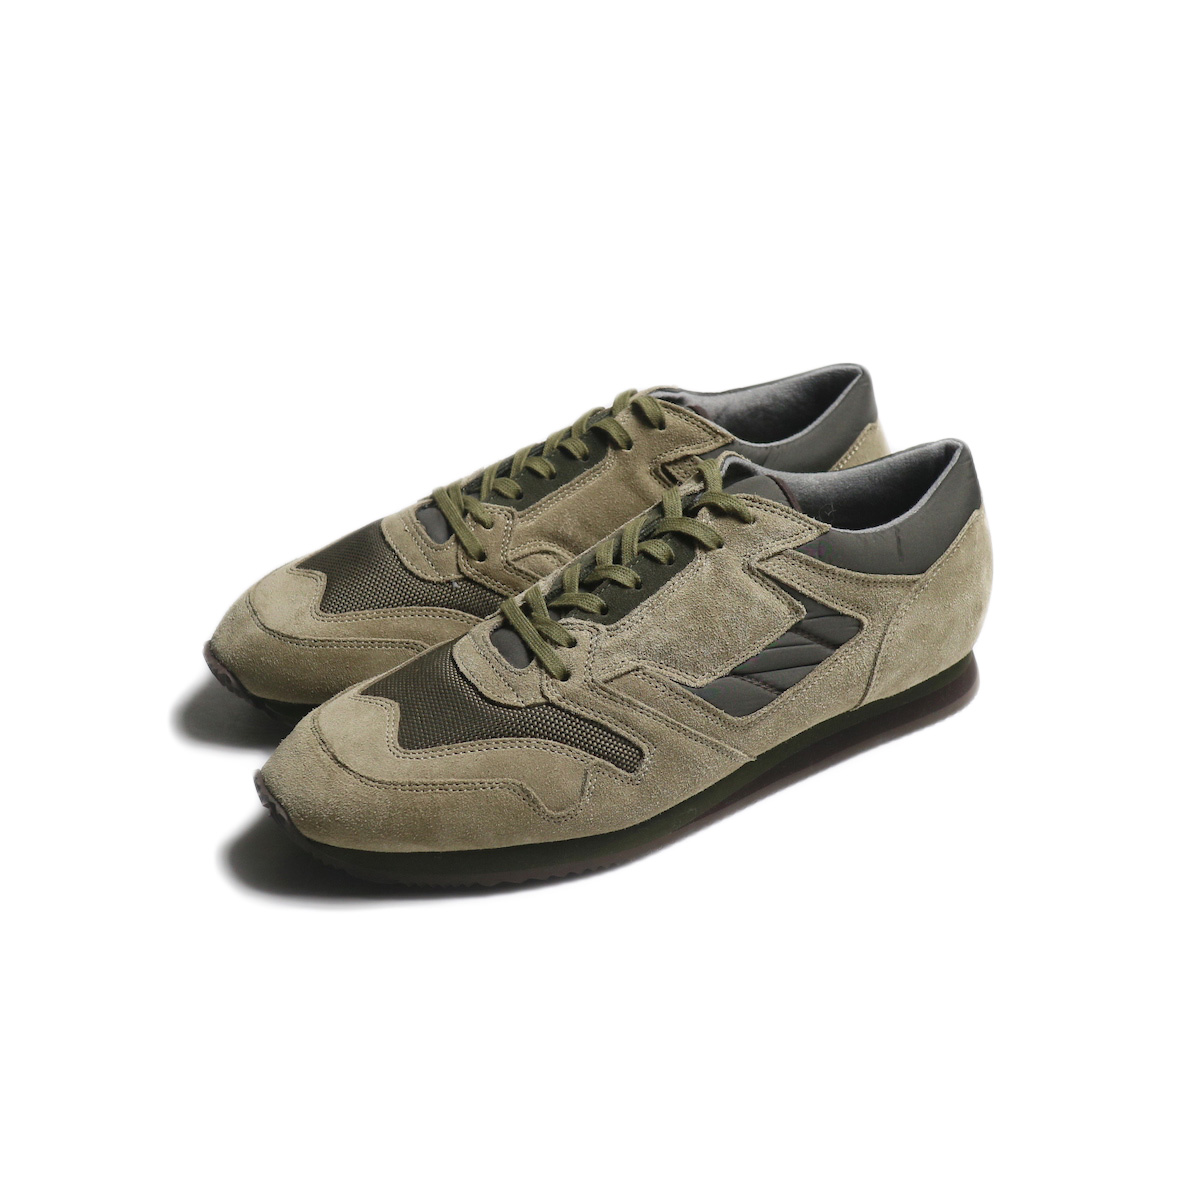 REPRODUCTION OF FOUND / BRITISH MILITARY TRAINER (beige/Olive)